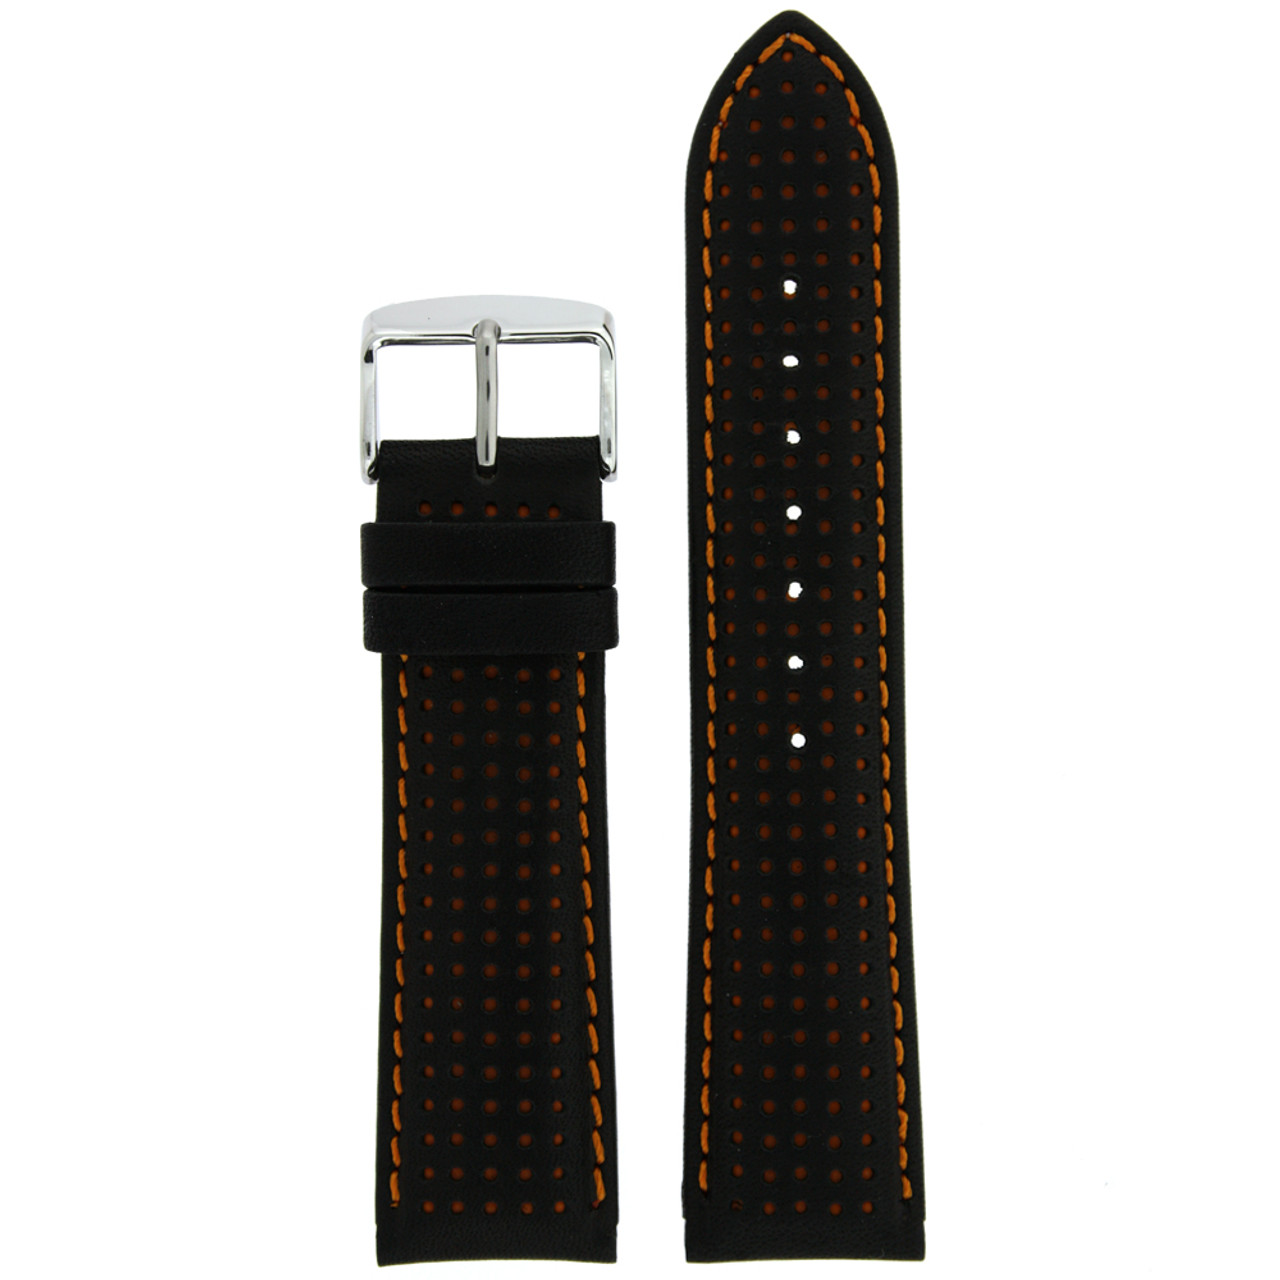 Black Leather Watch Band with Orange Trim - Top View